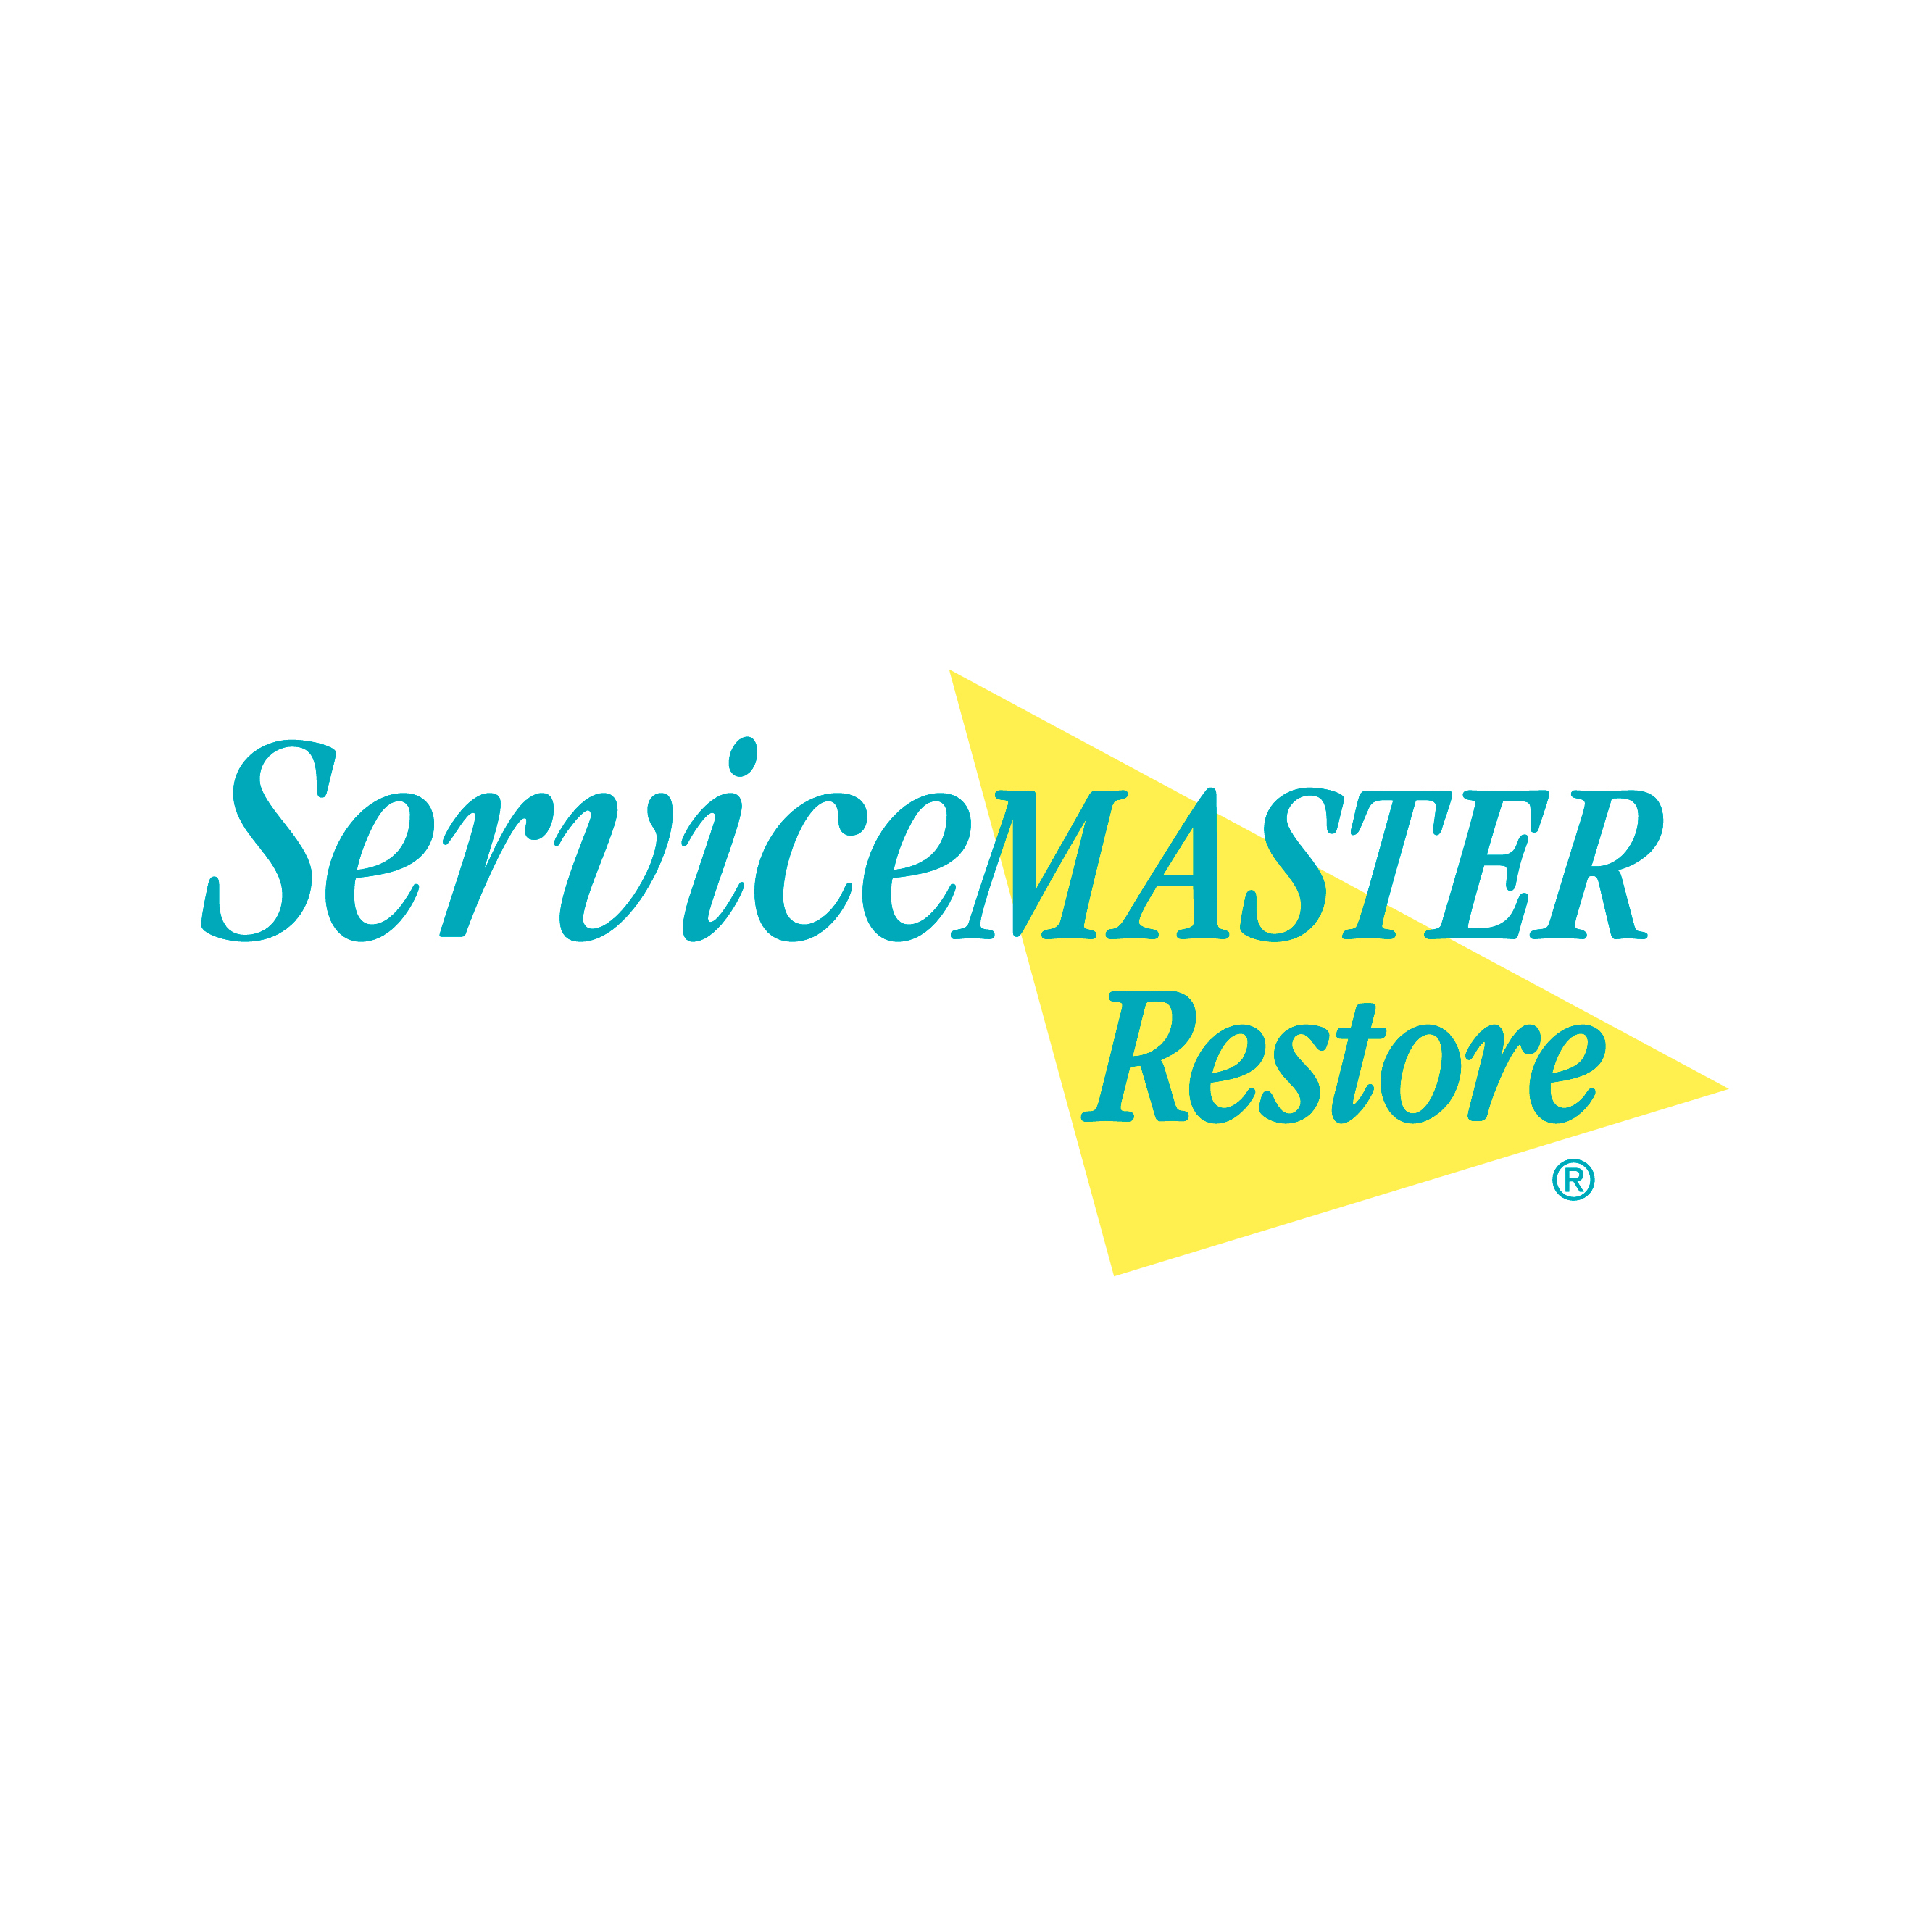 ServiceMaster Restoration by RCS